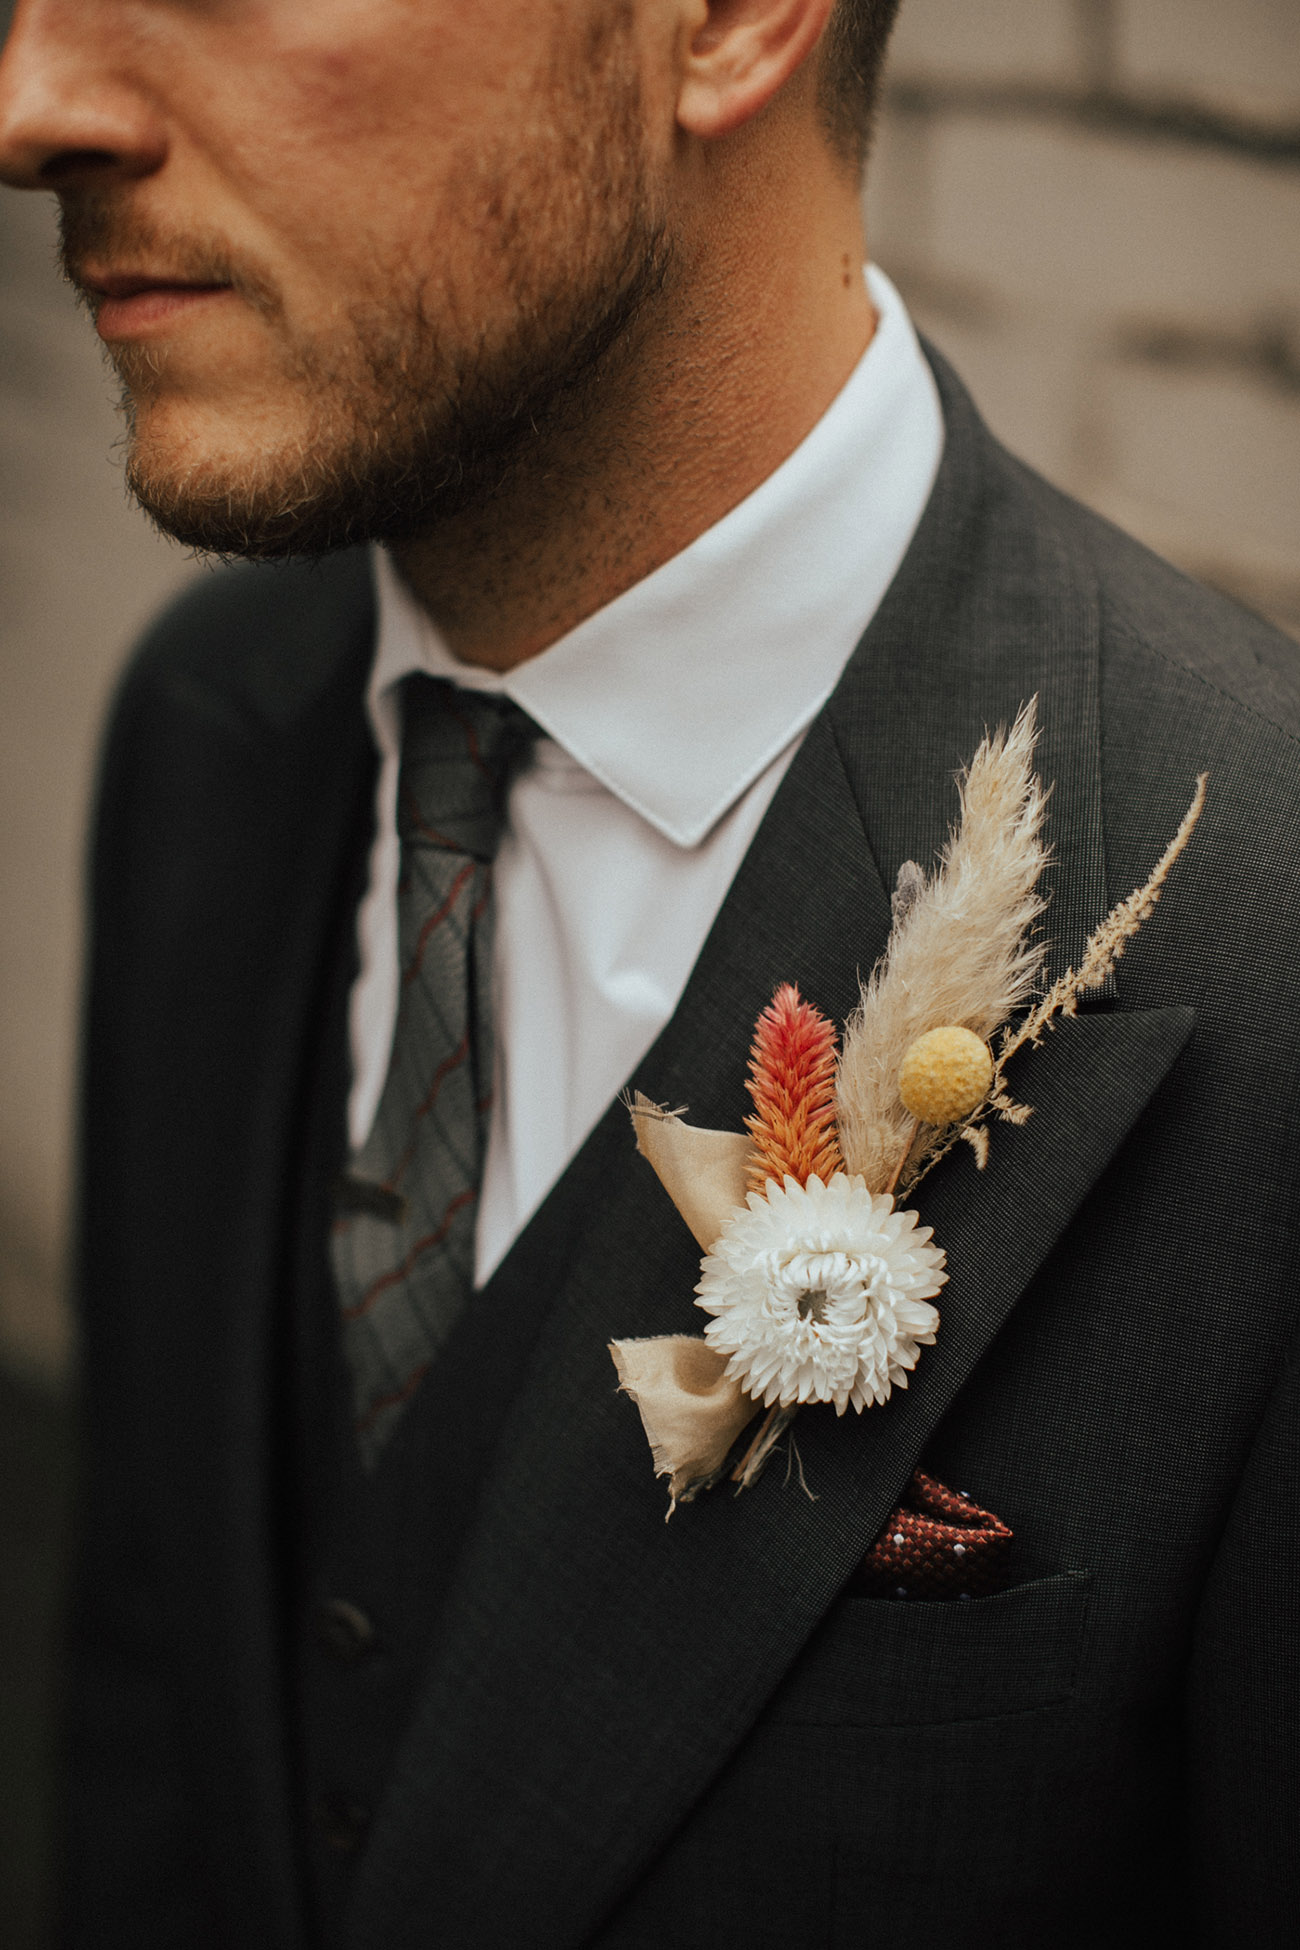 masculine boutonniere of dried flowers